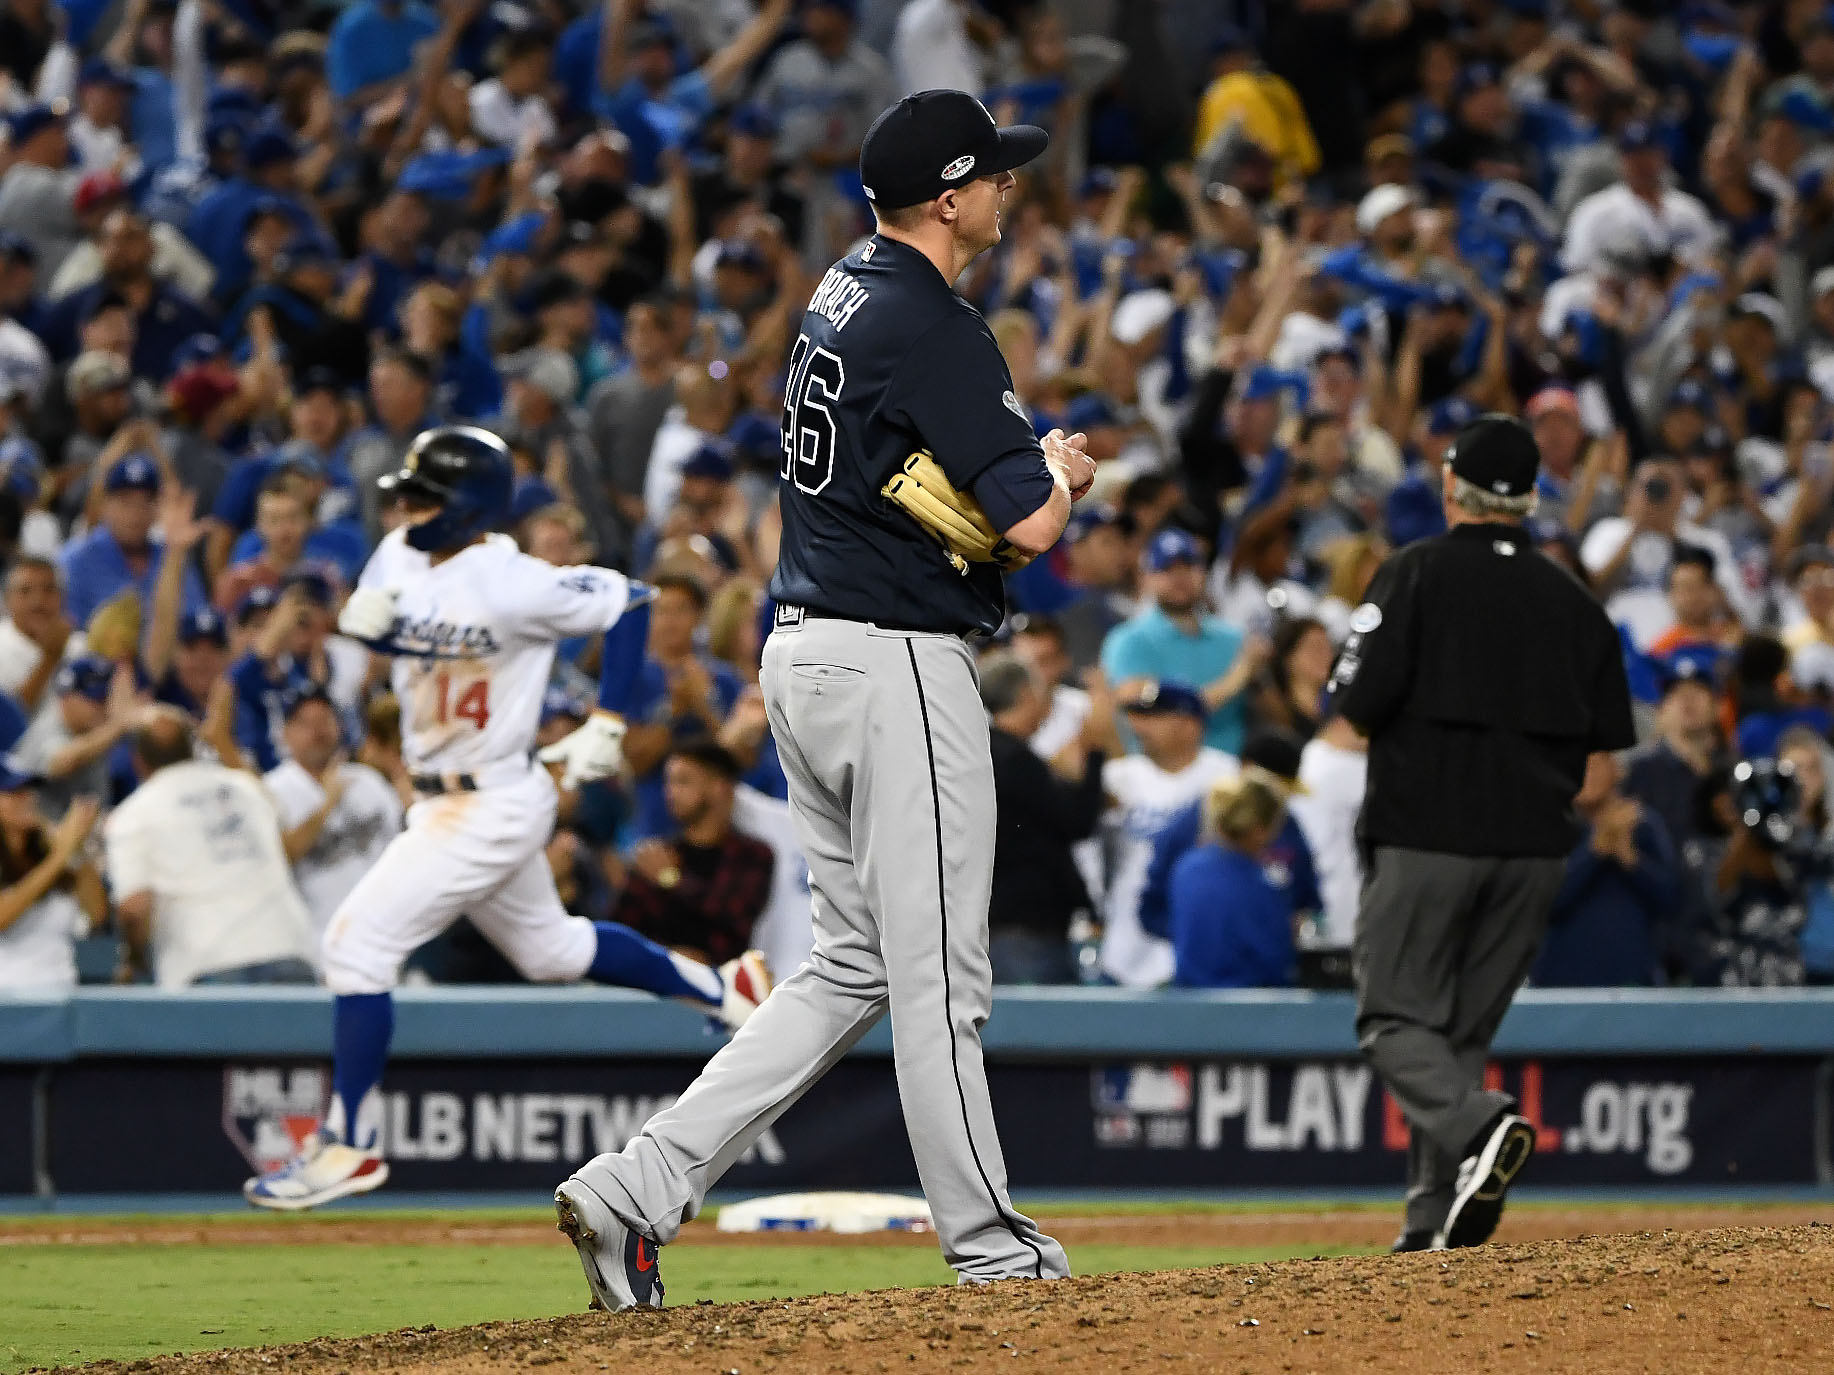 Too Many Mistakes Lead to Braves Loss in NLDS Opener